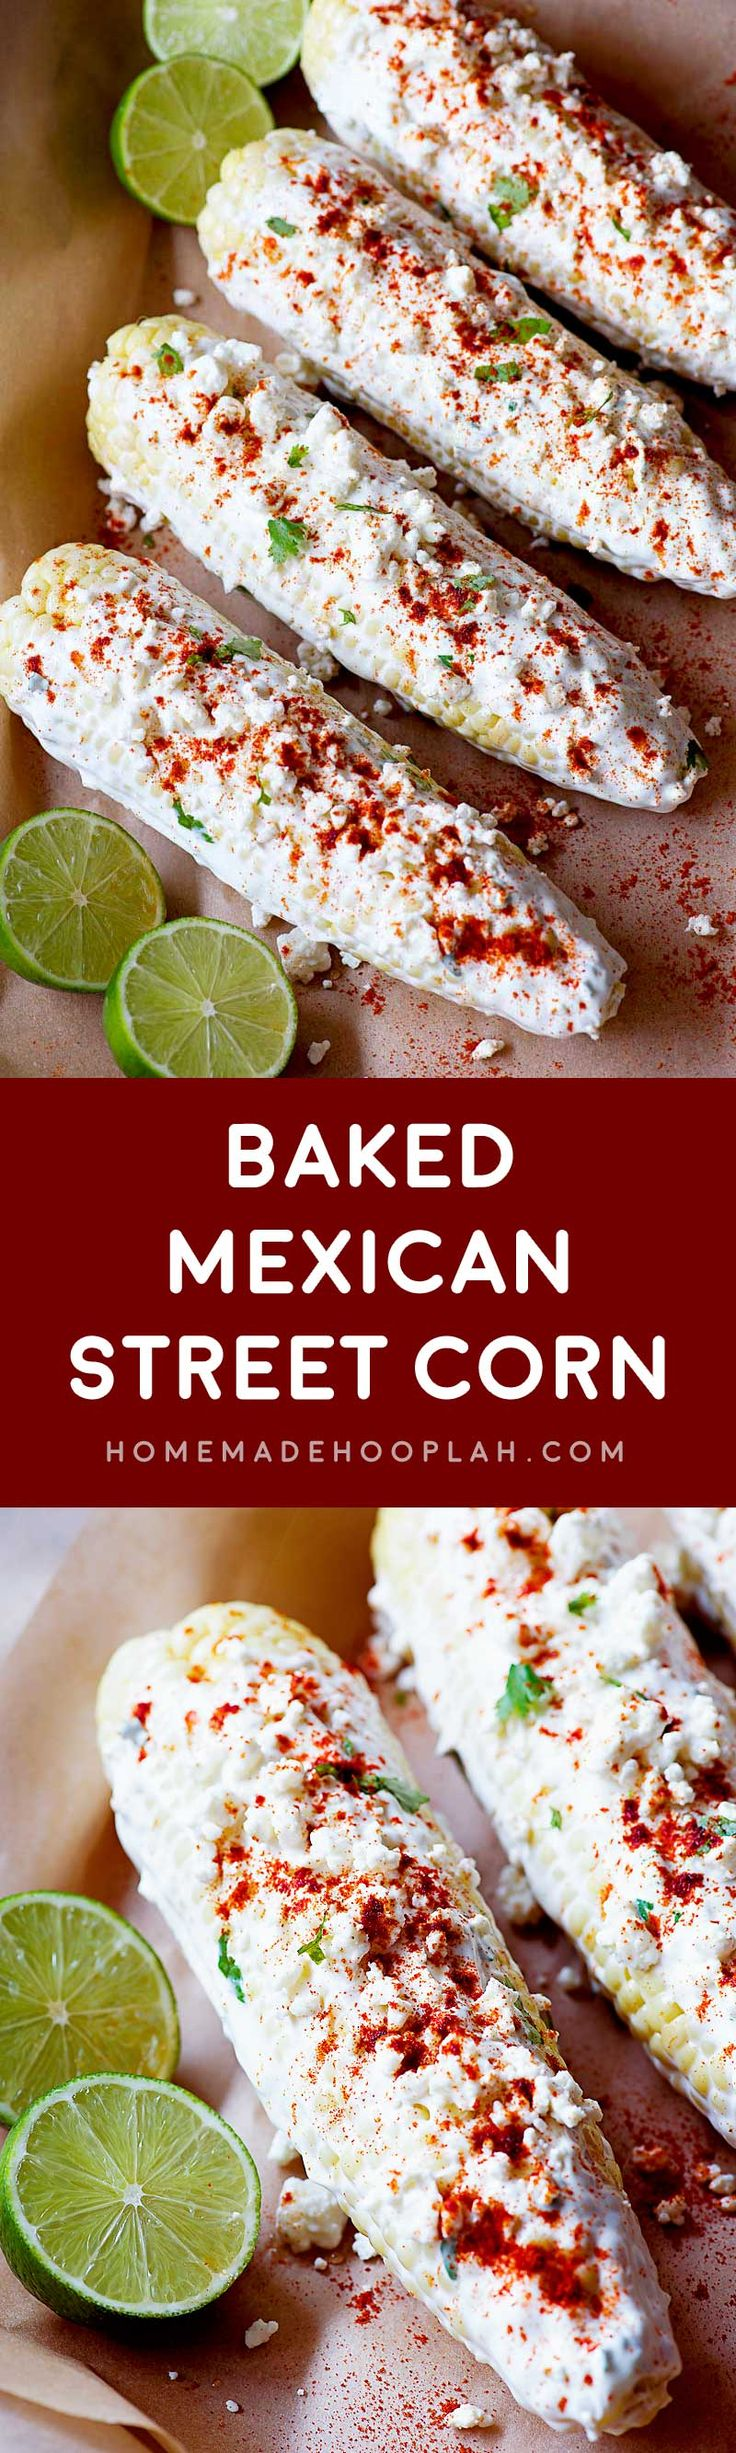 Baked Mexican Street Corn! Classic Elotes flavored with feta cheese and smoked paprika. The corn is also baked, making it easy to make this classic summer food year round!   HomemadeHooplah.com